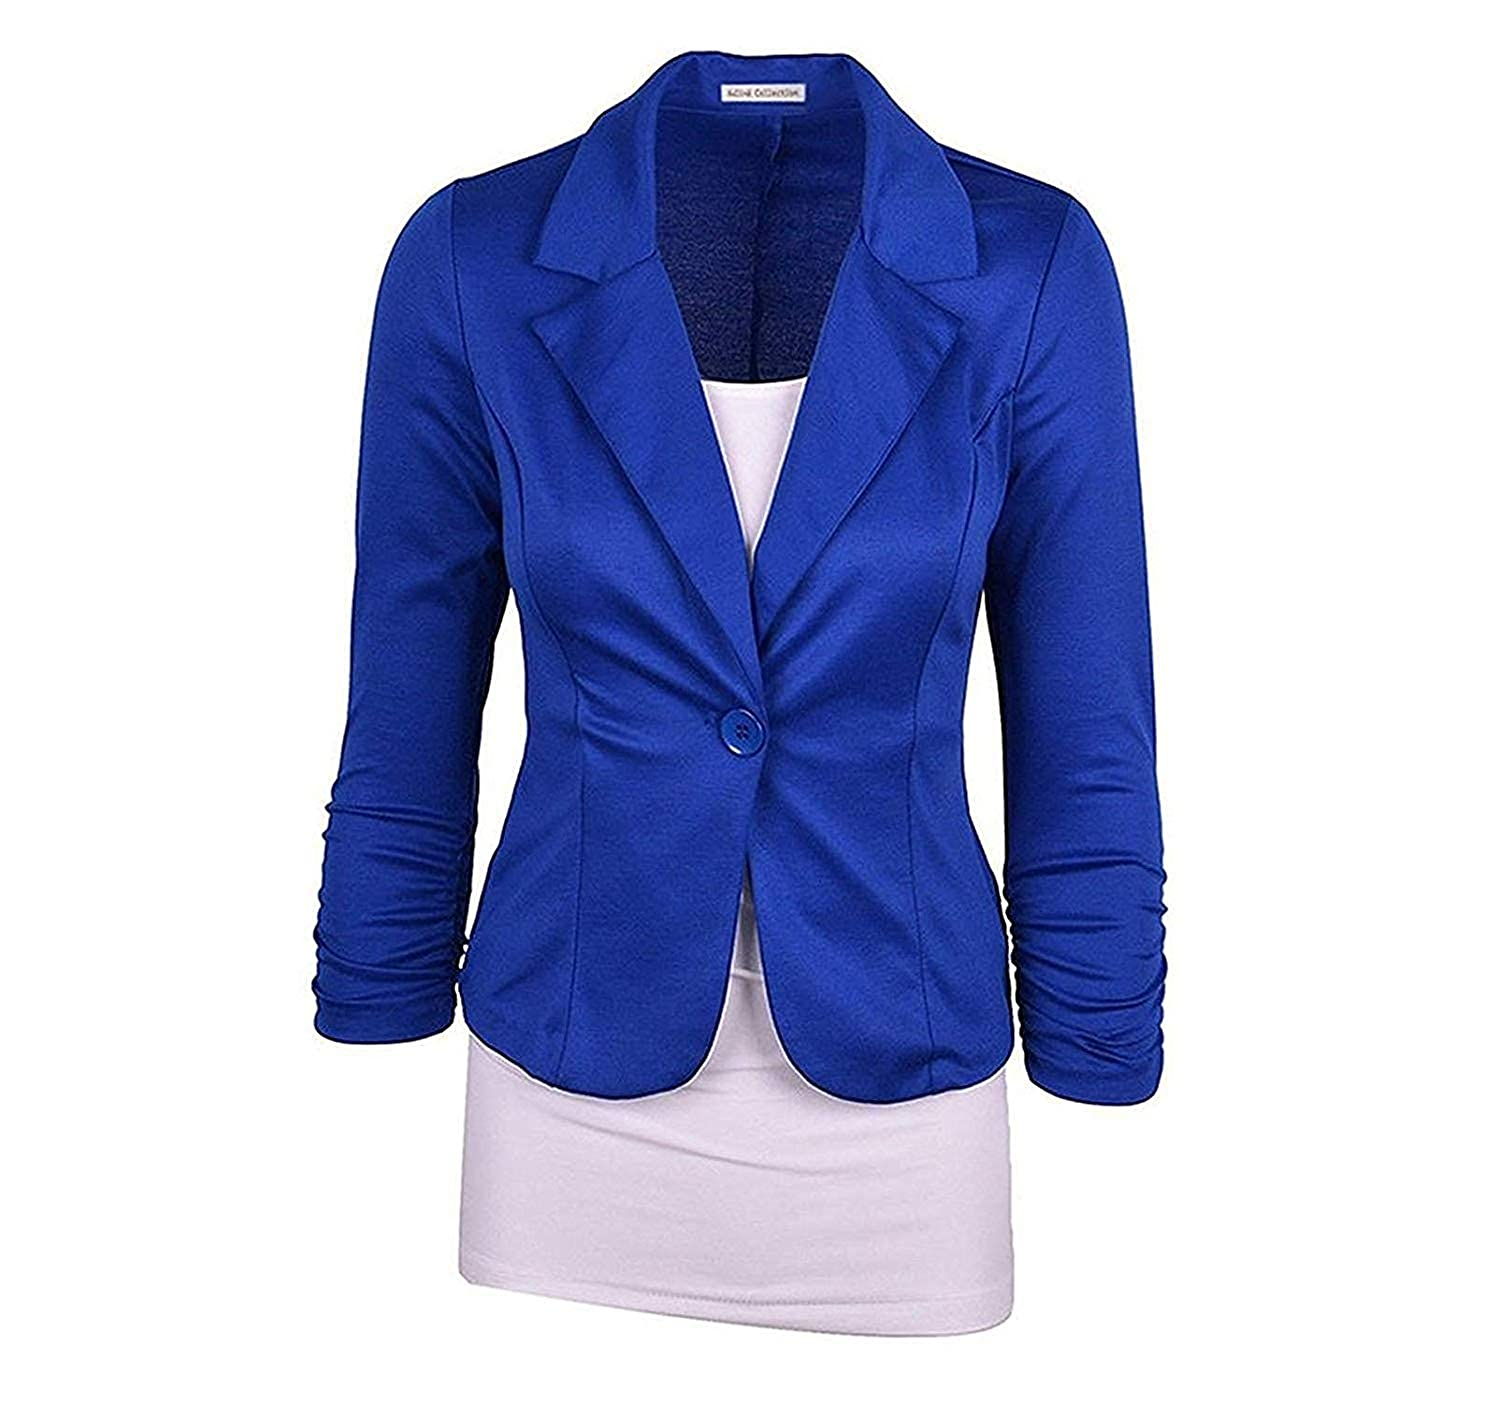 bluee Welcometoo Women's Collarless Work Office Business Casual Cropped Blazer Lady Small Suit